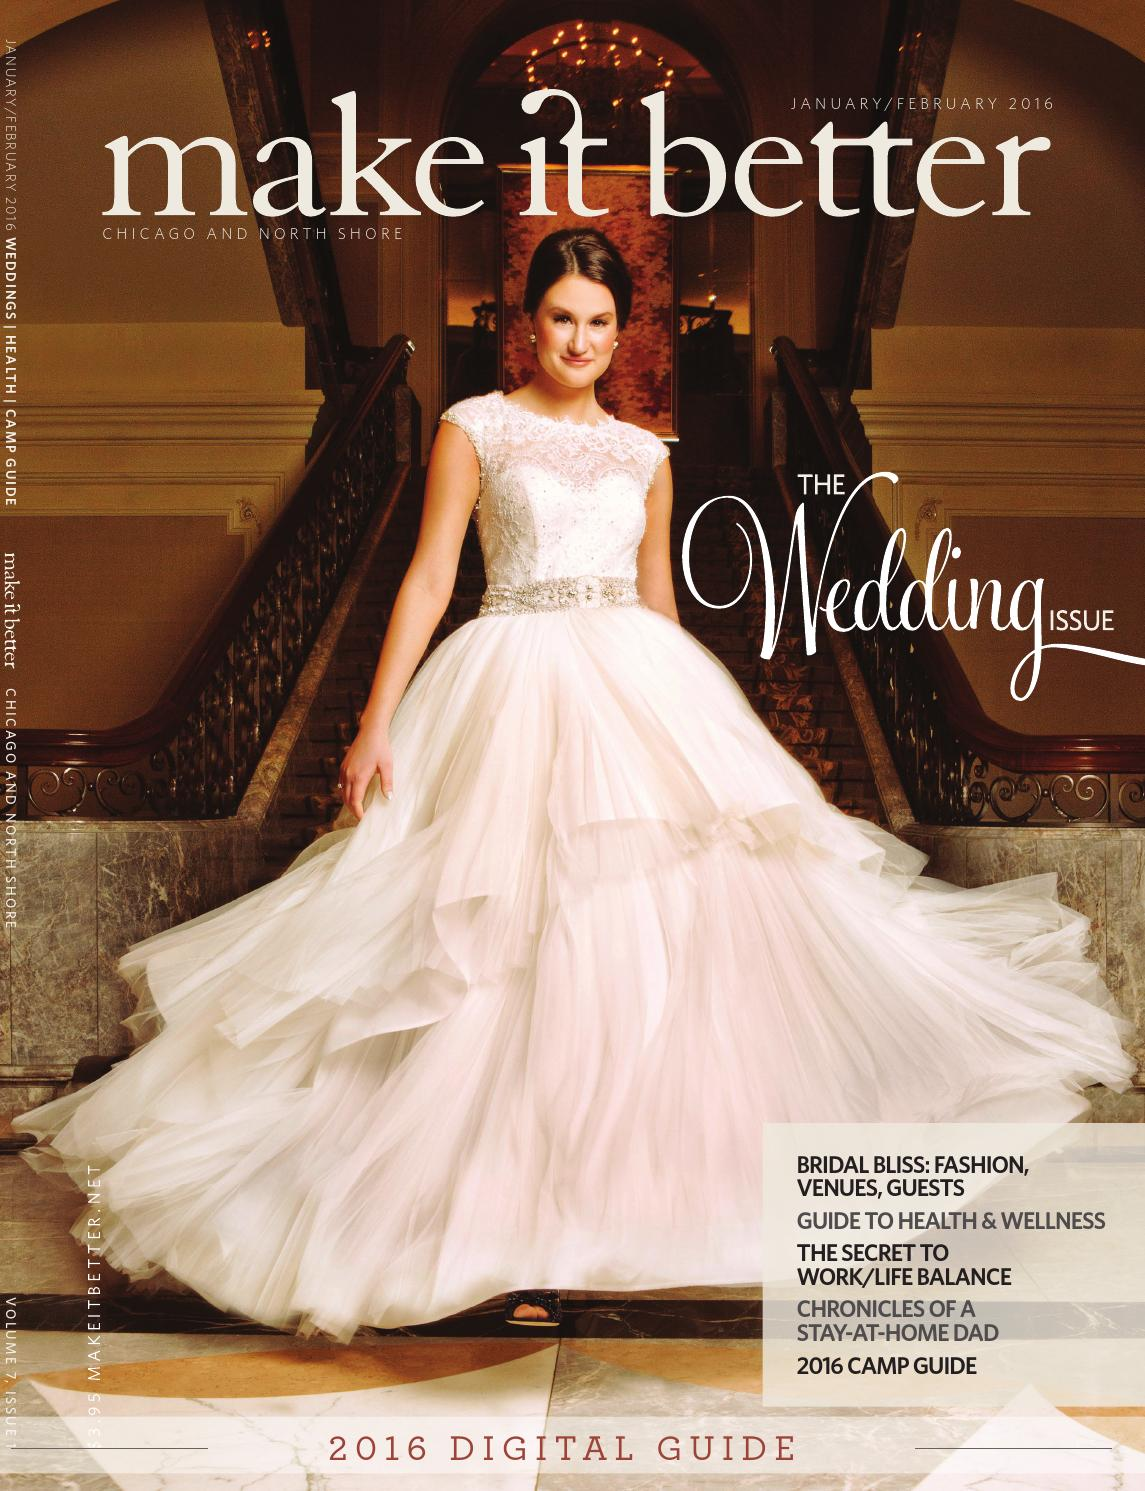 Choosing the perfect wedding dress in the salon Grand openwork